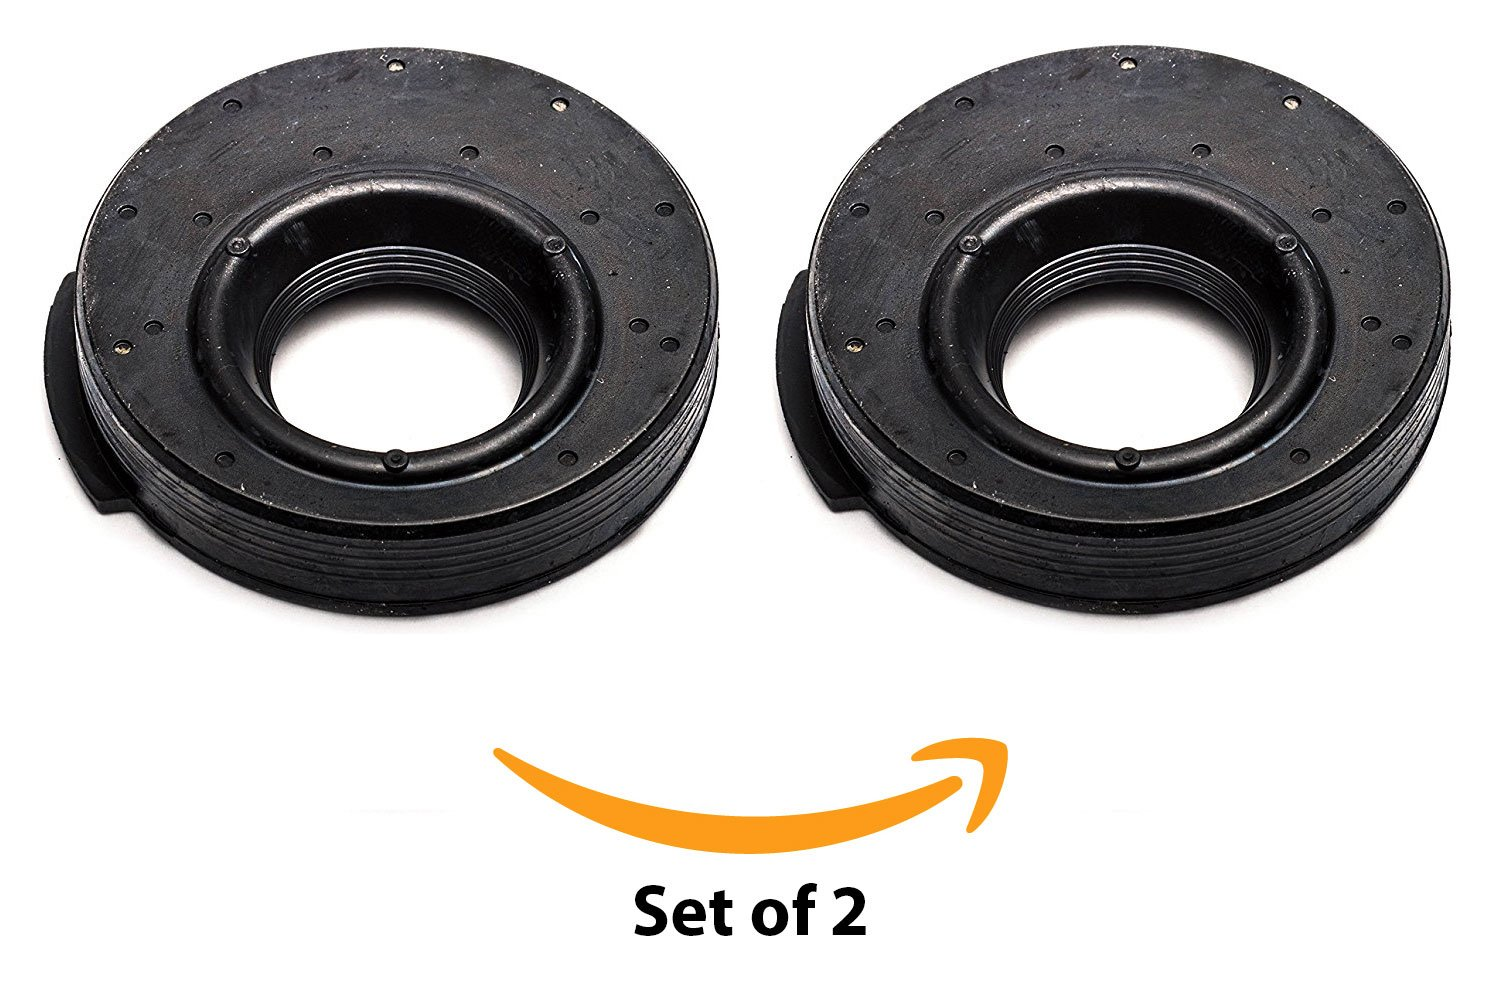 VCT Variable Camshaft Cam Timing Solenoid Valve Cover Grommet Seal Set For Ford 1 3/4 Replaces 3L3Z-6C535-AA Auto Parts Prodigy